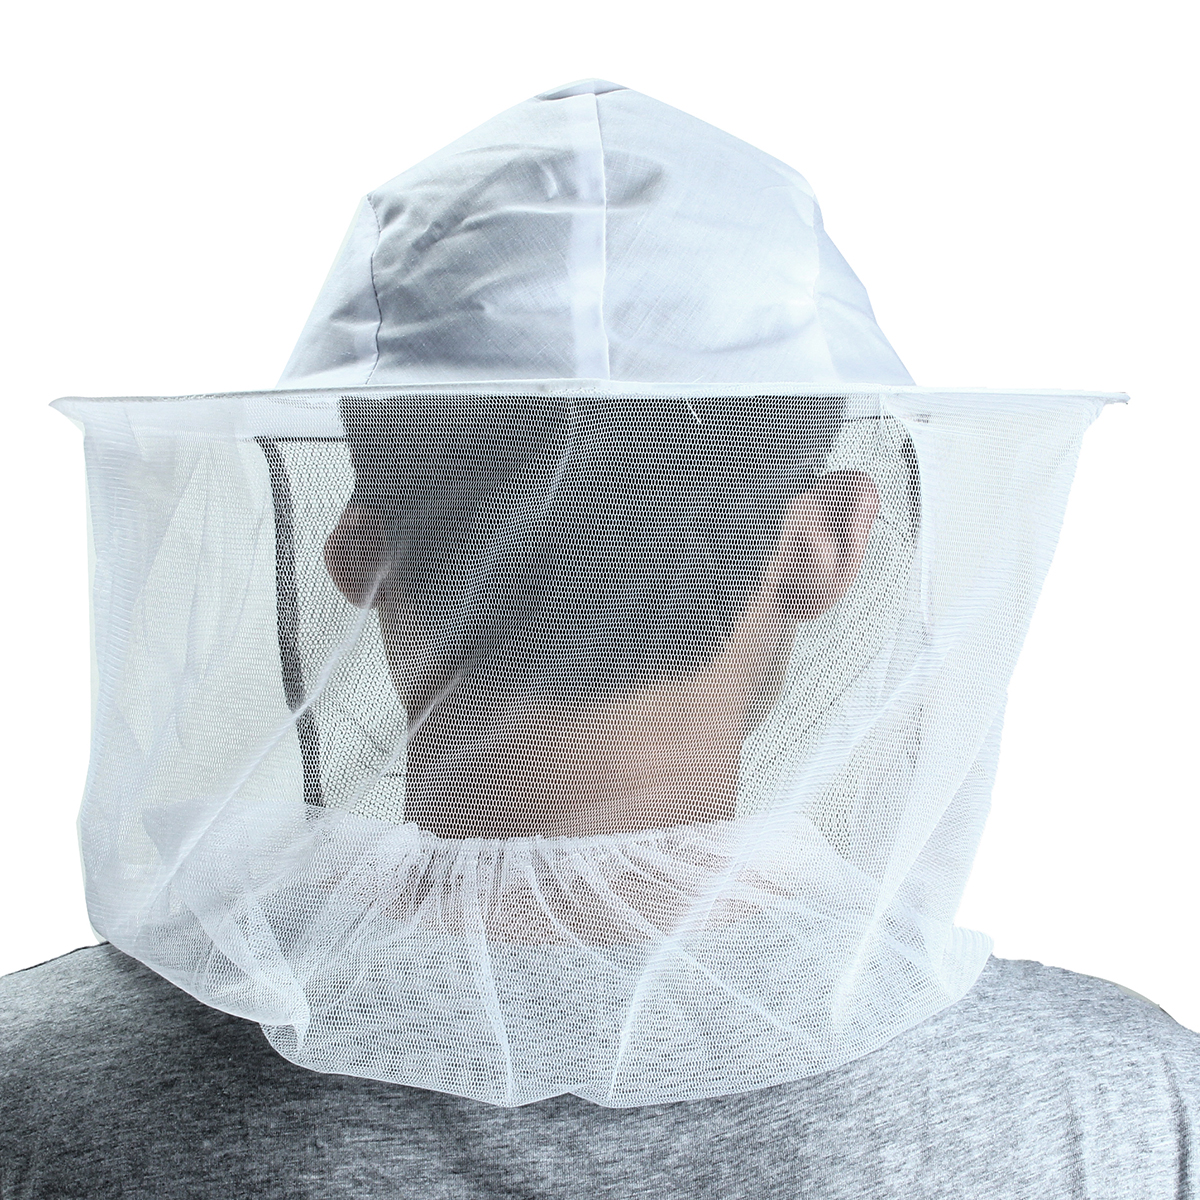 Garden Supplies Beekeeping Supplies Logical Neck Cover Mask Portable Beekeeping Hat Outdoor Head Bee Tool Protective Cap Mosquito Bee Net Veil Face